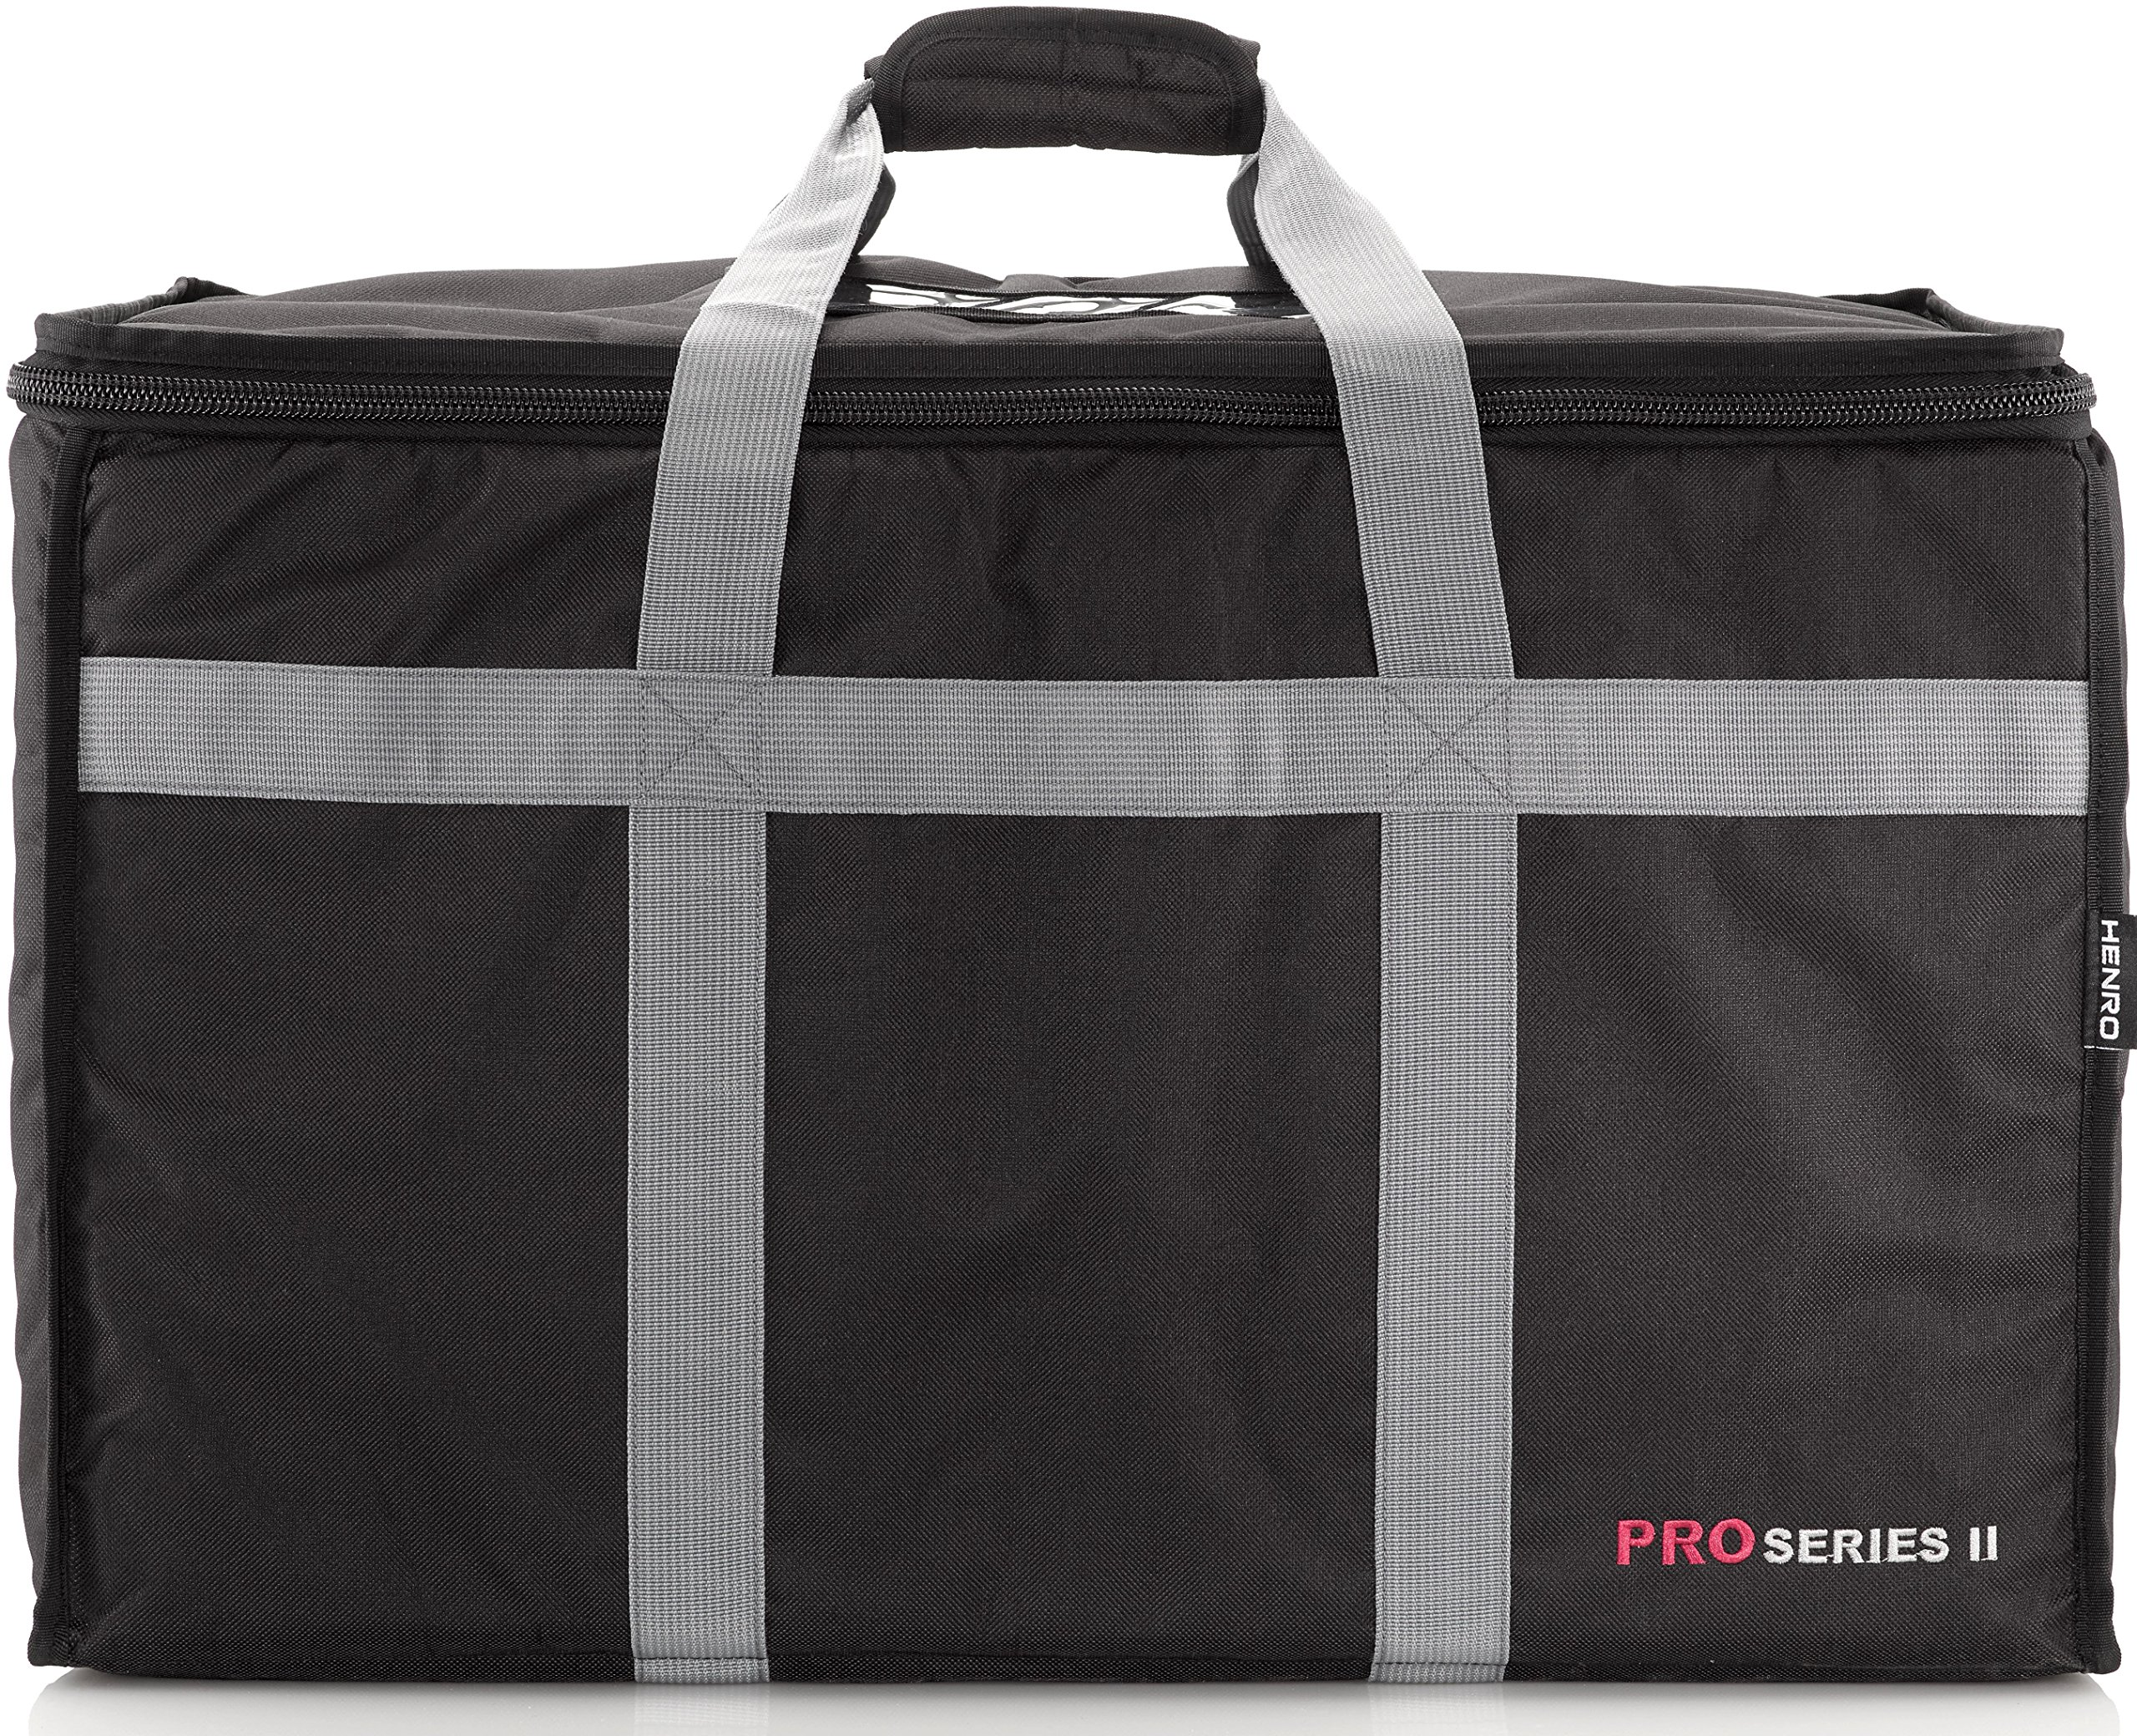 Insulated Commercial Food Delivery Bag - Professional Hot/Cold Thermal Carrier - Large (23'' x 14'' x 15''), Lightweight & Portable for Catering, Grocery Shopping or Parties & Holidays